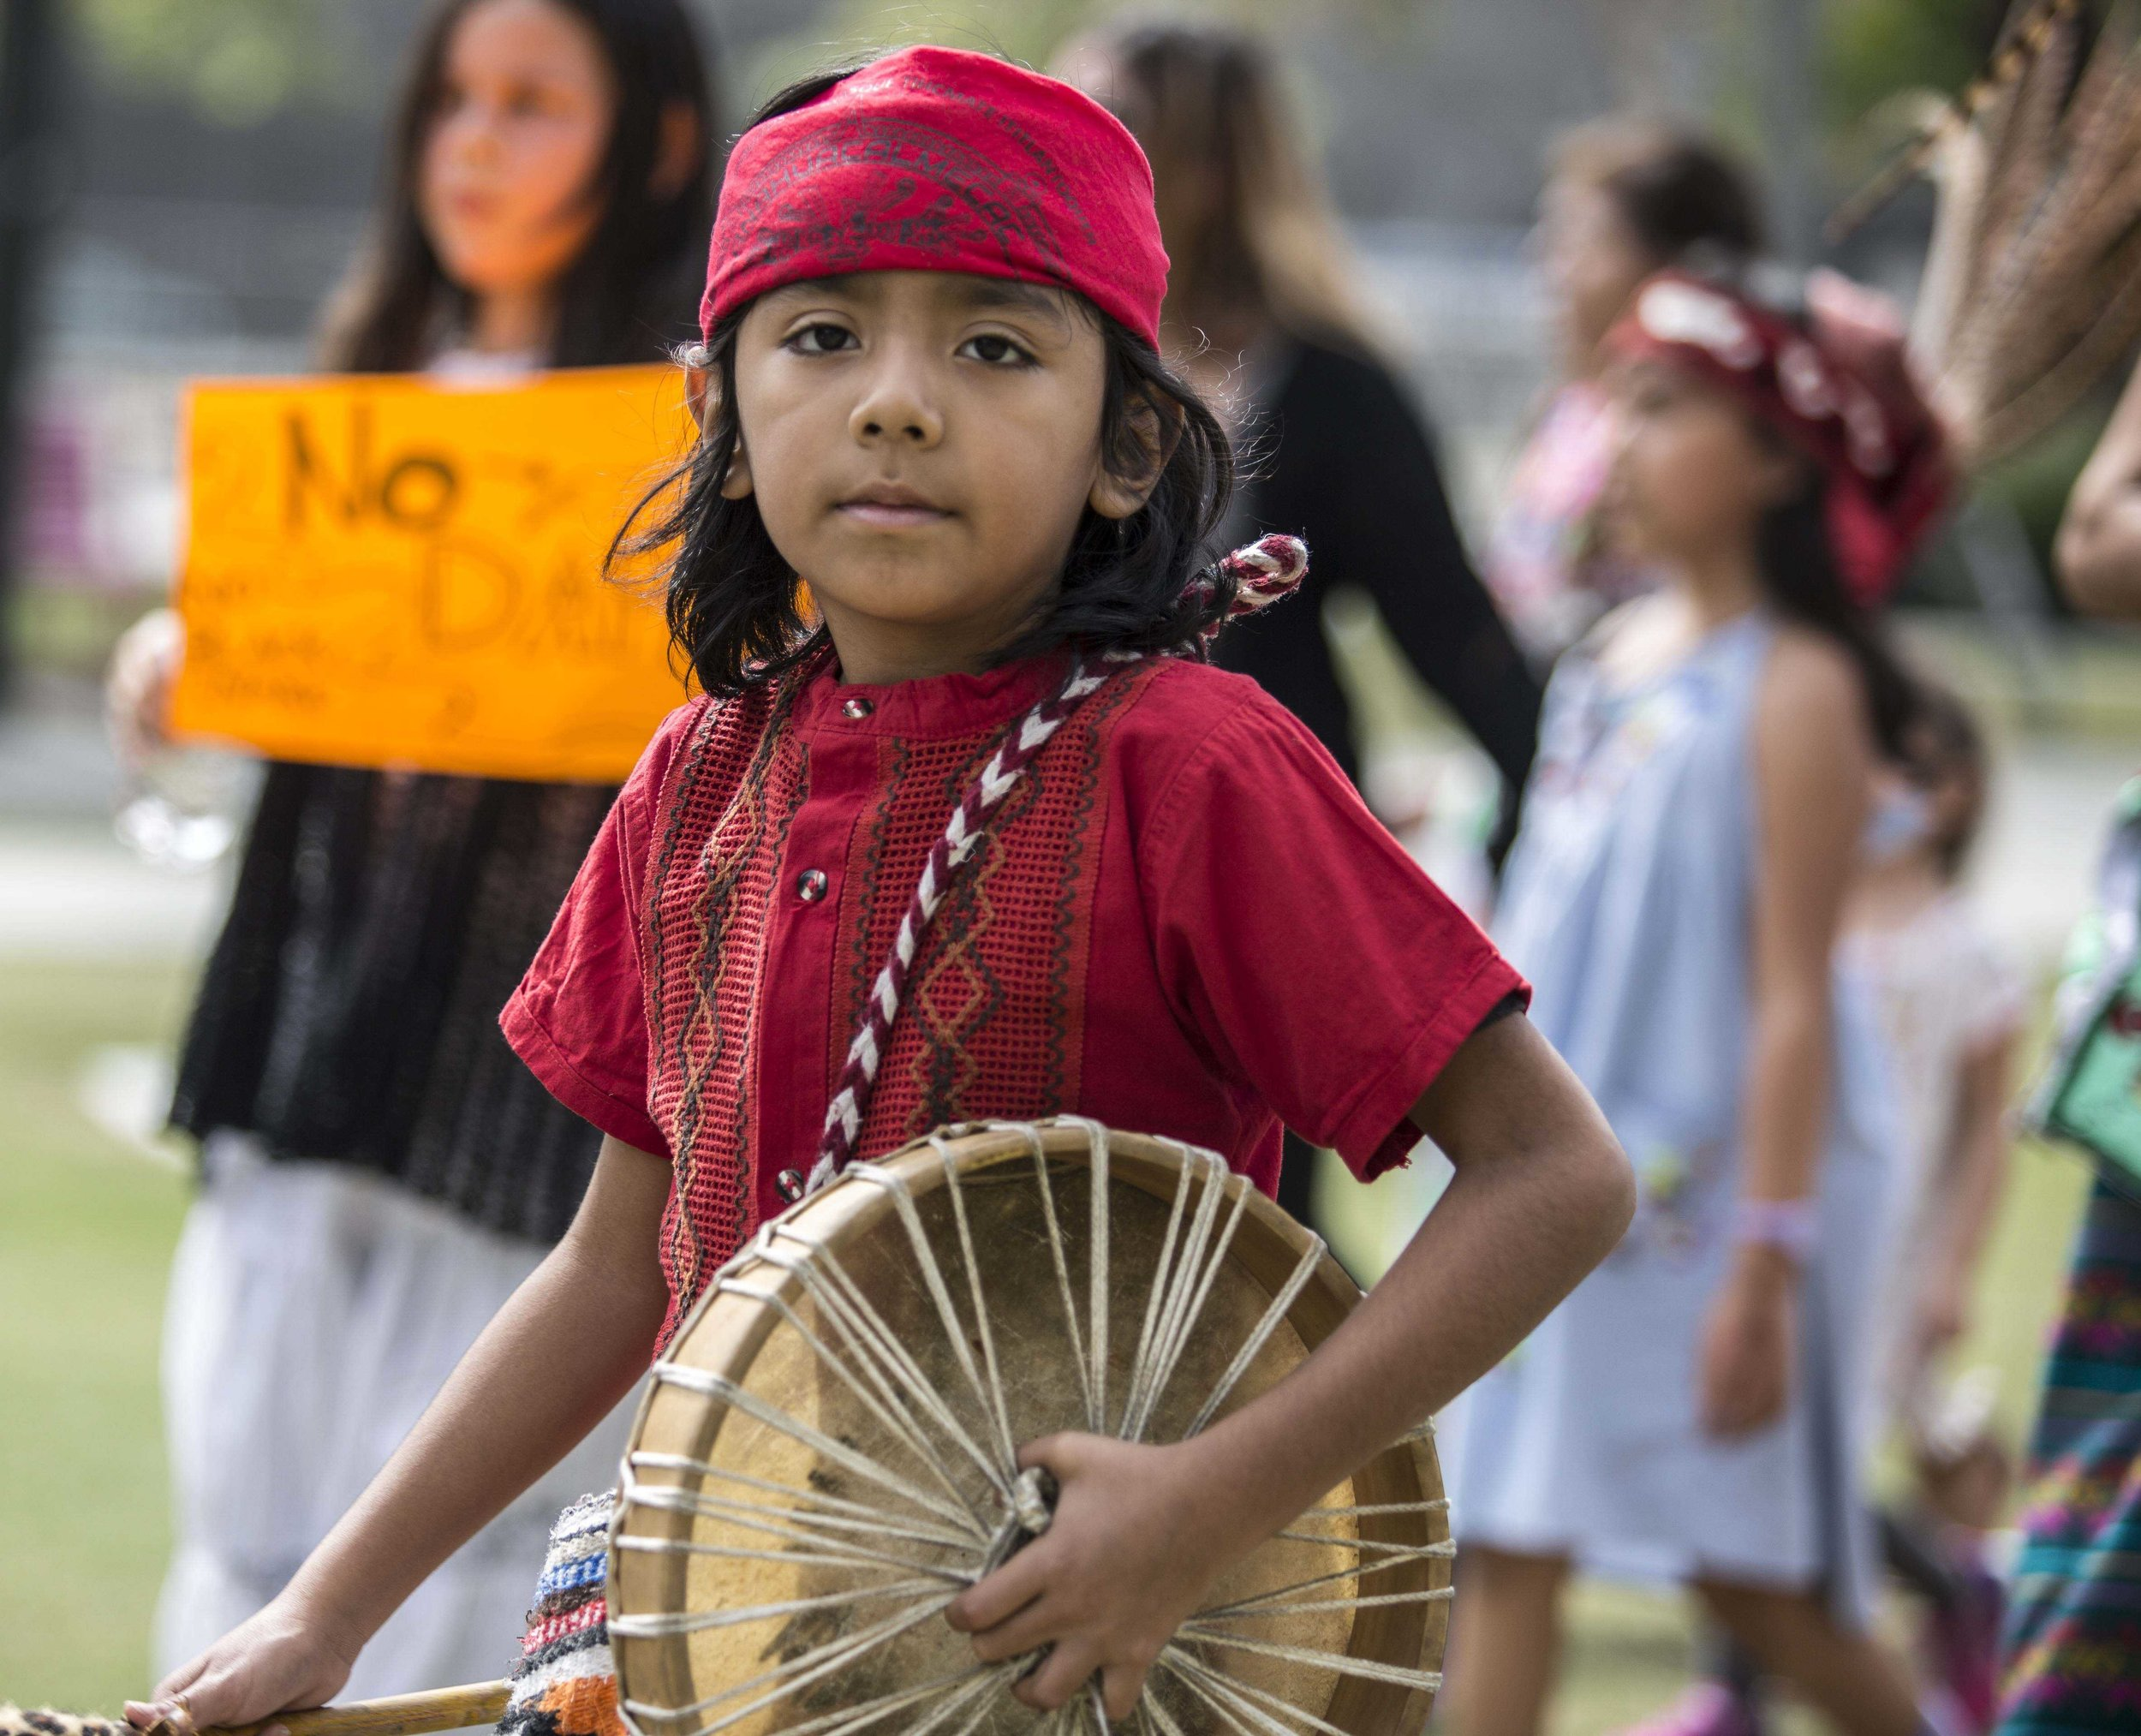 """A young activist and """"water protector"""" is photographed arriving at Los Angles City Hall after marching with a coalition of activists and water protectors during the Divest LA march in downtown Los Angles, Calif., on Friday, March 10 2017. (Corsair Photo: Matthew Martin)"""